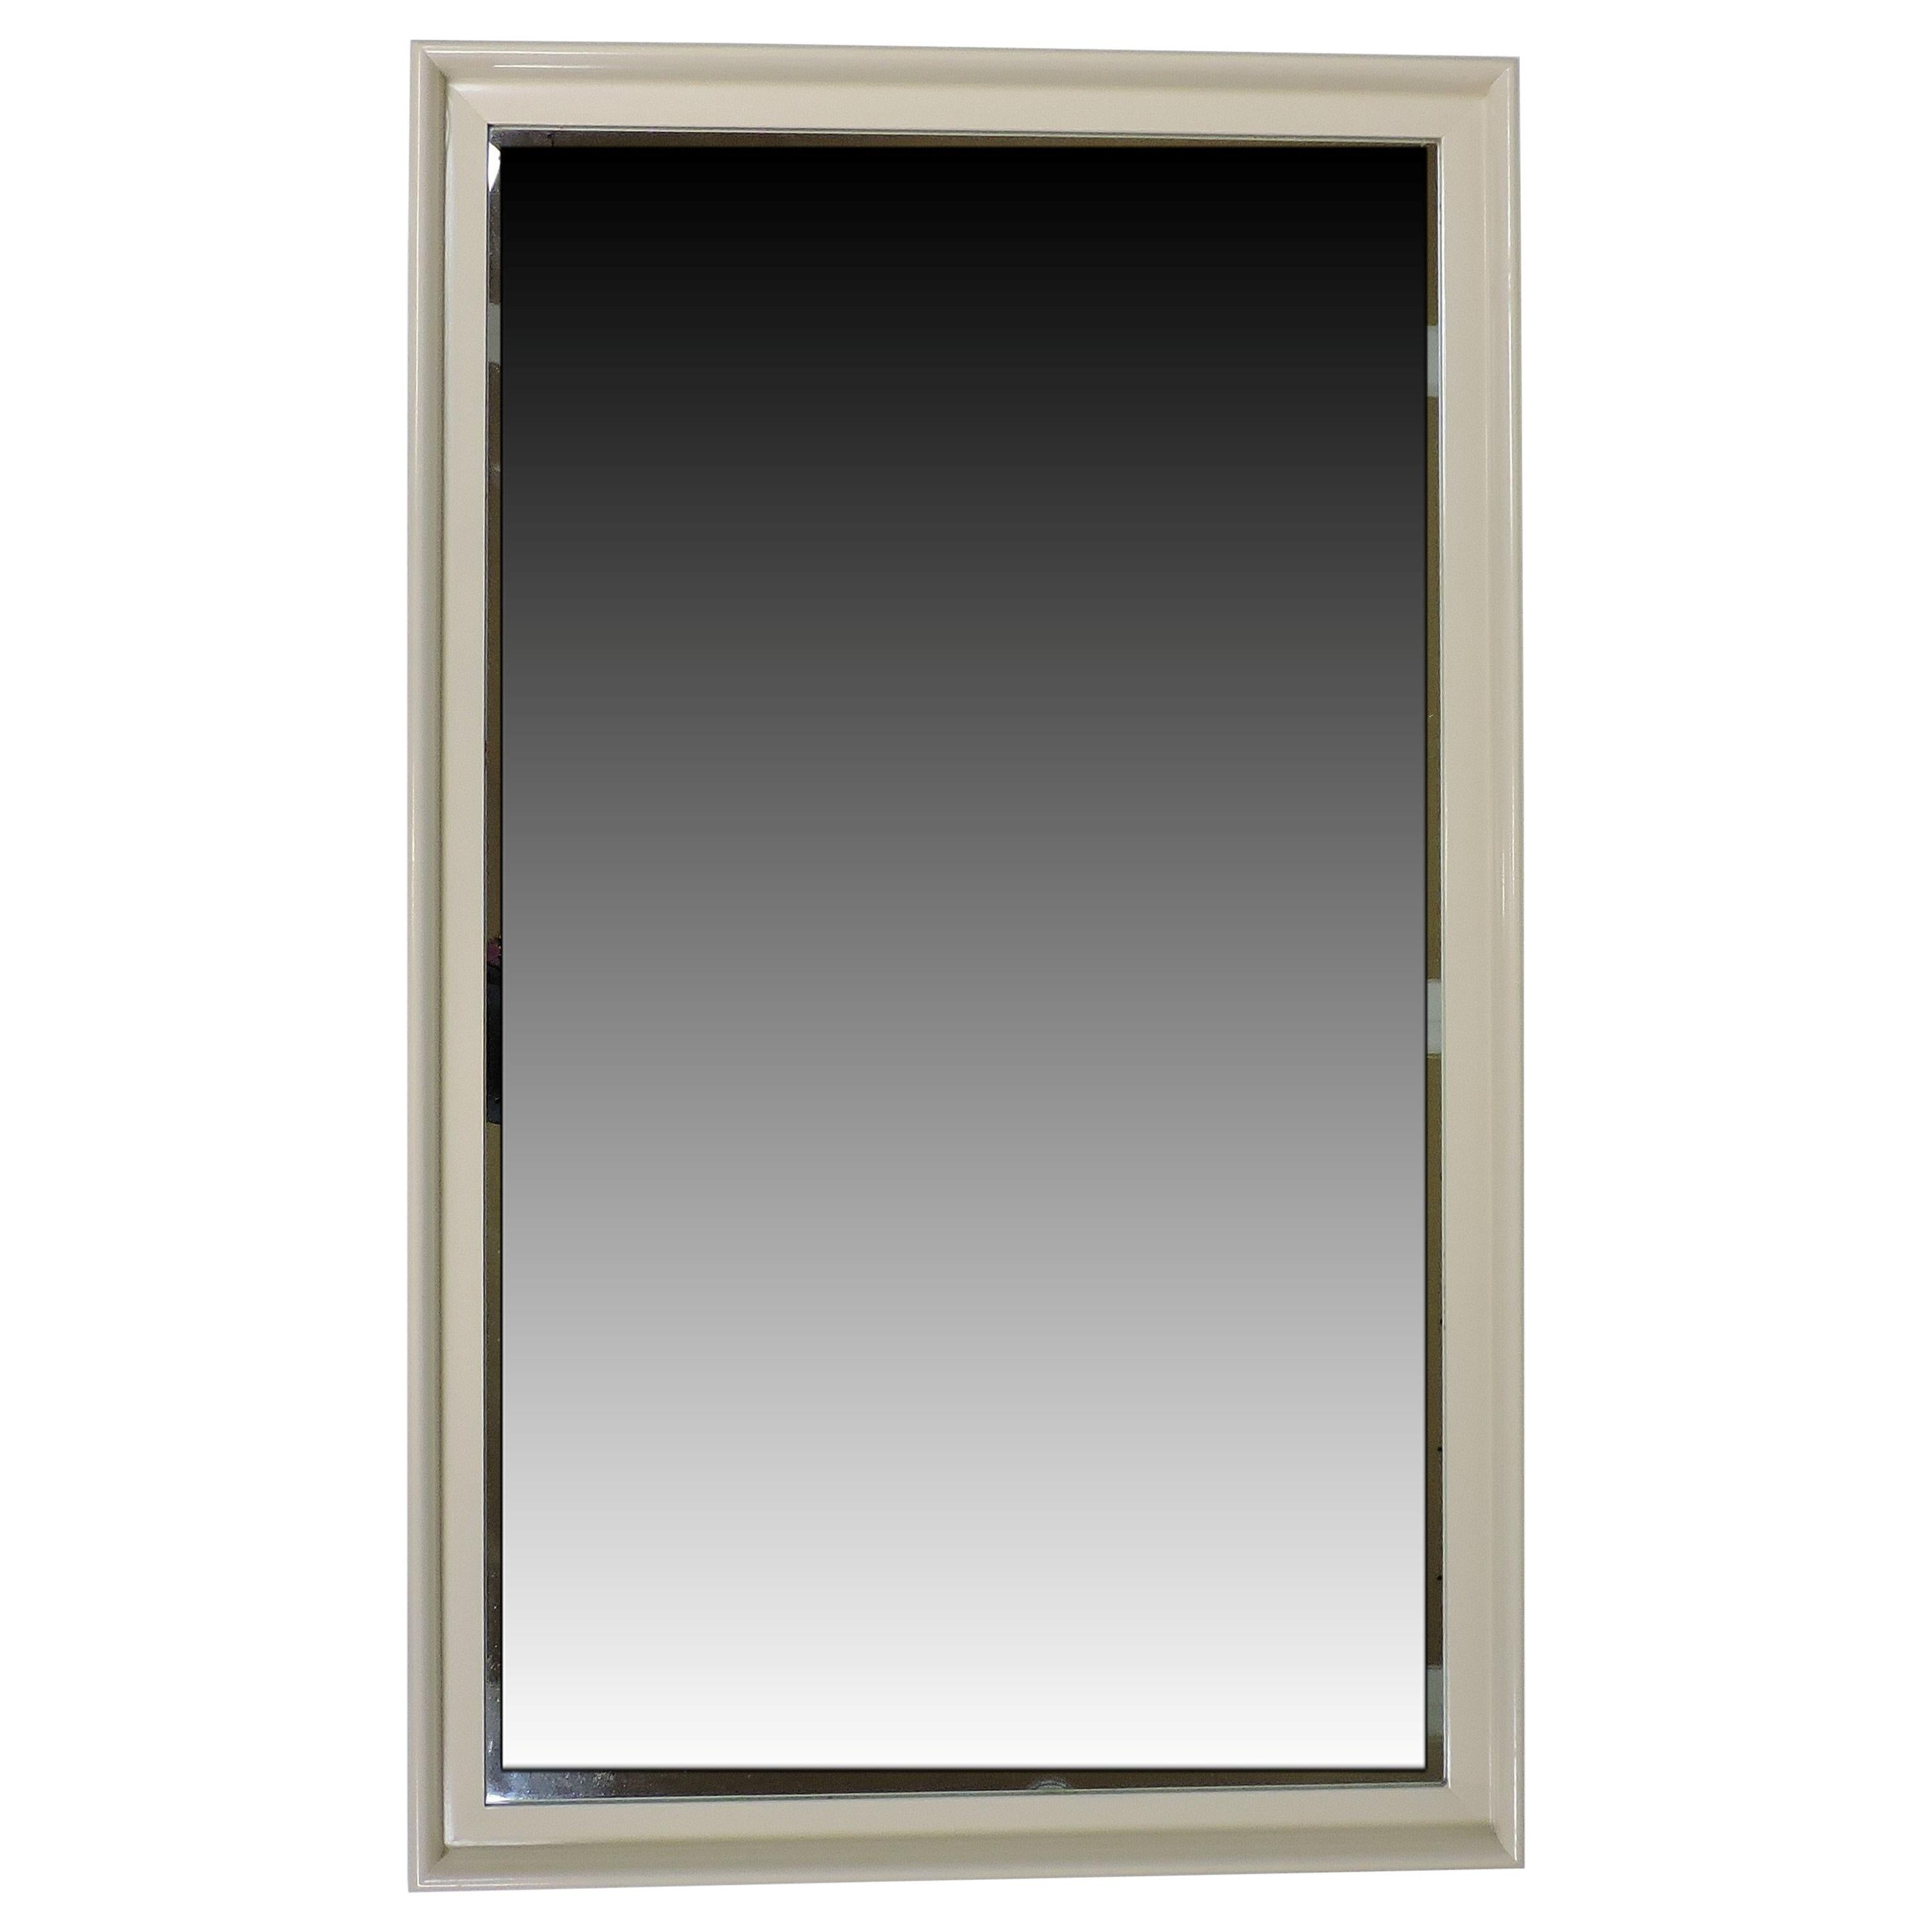 Paul Frankl Mid-Century Modern Large Lacquer Mirror for Johnson Furniture